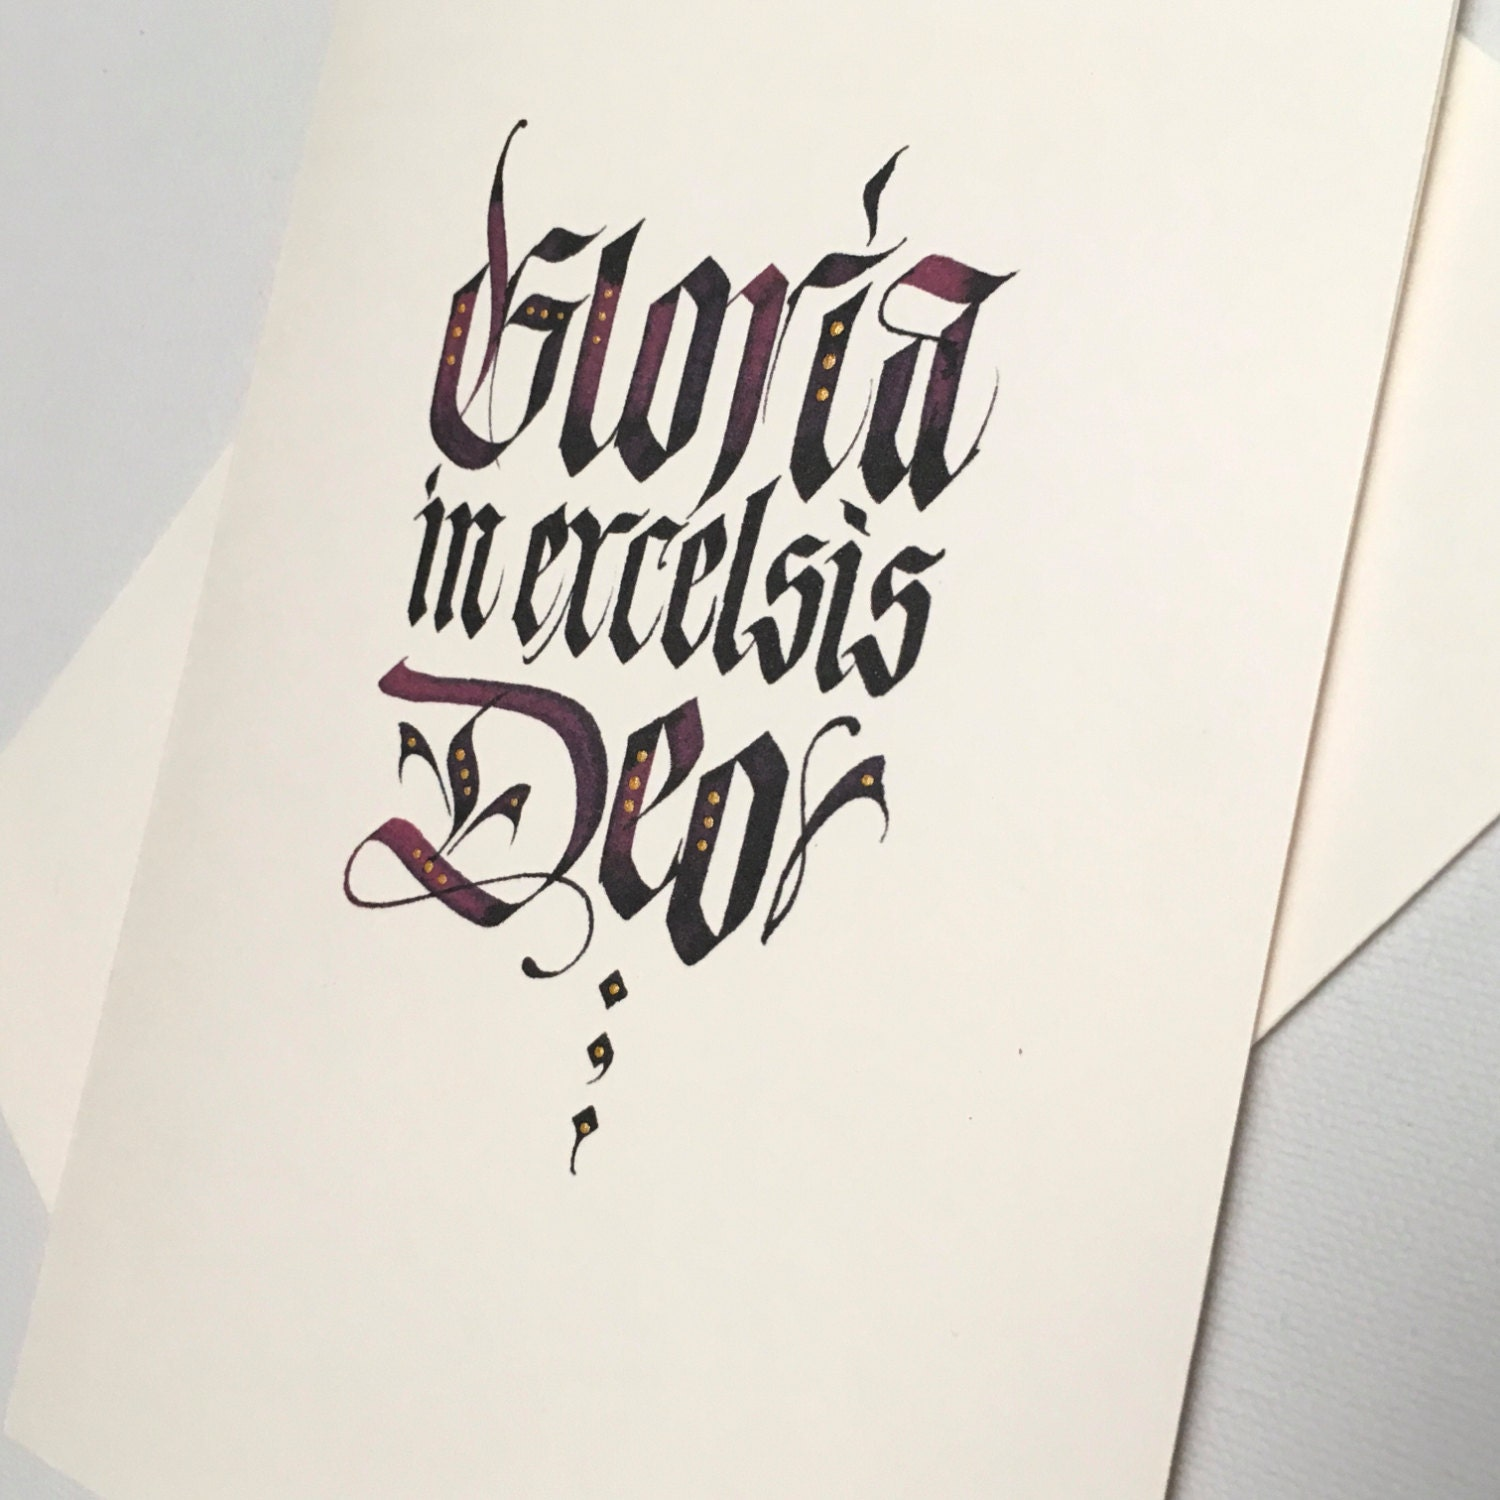 Hand embellished calligraphy christmas card gloria in excelsis deo hand embellished calligraphy christmas card gloria in excelsis deo christmas cards gothic kristyandbryce Images